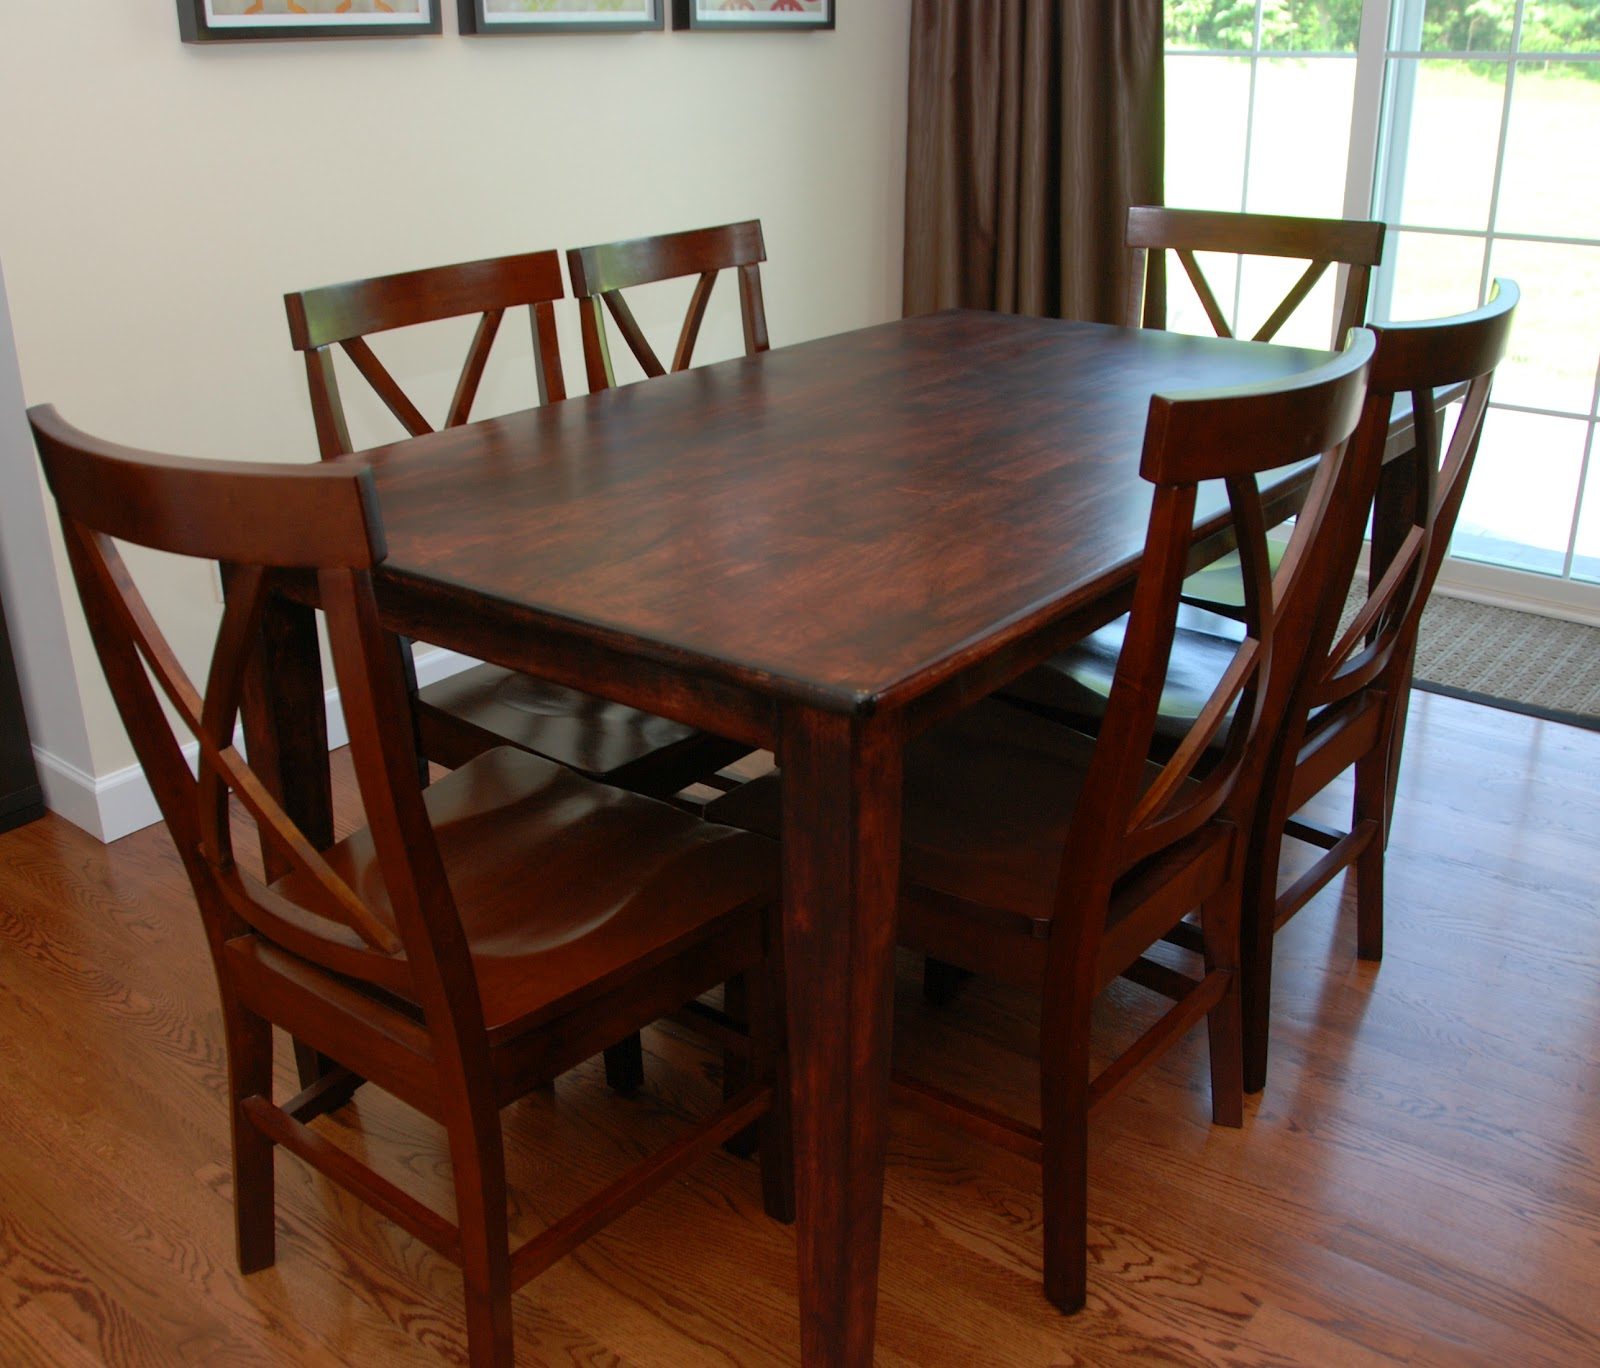 Refinished Dining Room Tables: One Creative Housewife: Refinished Kitchen Table